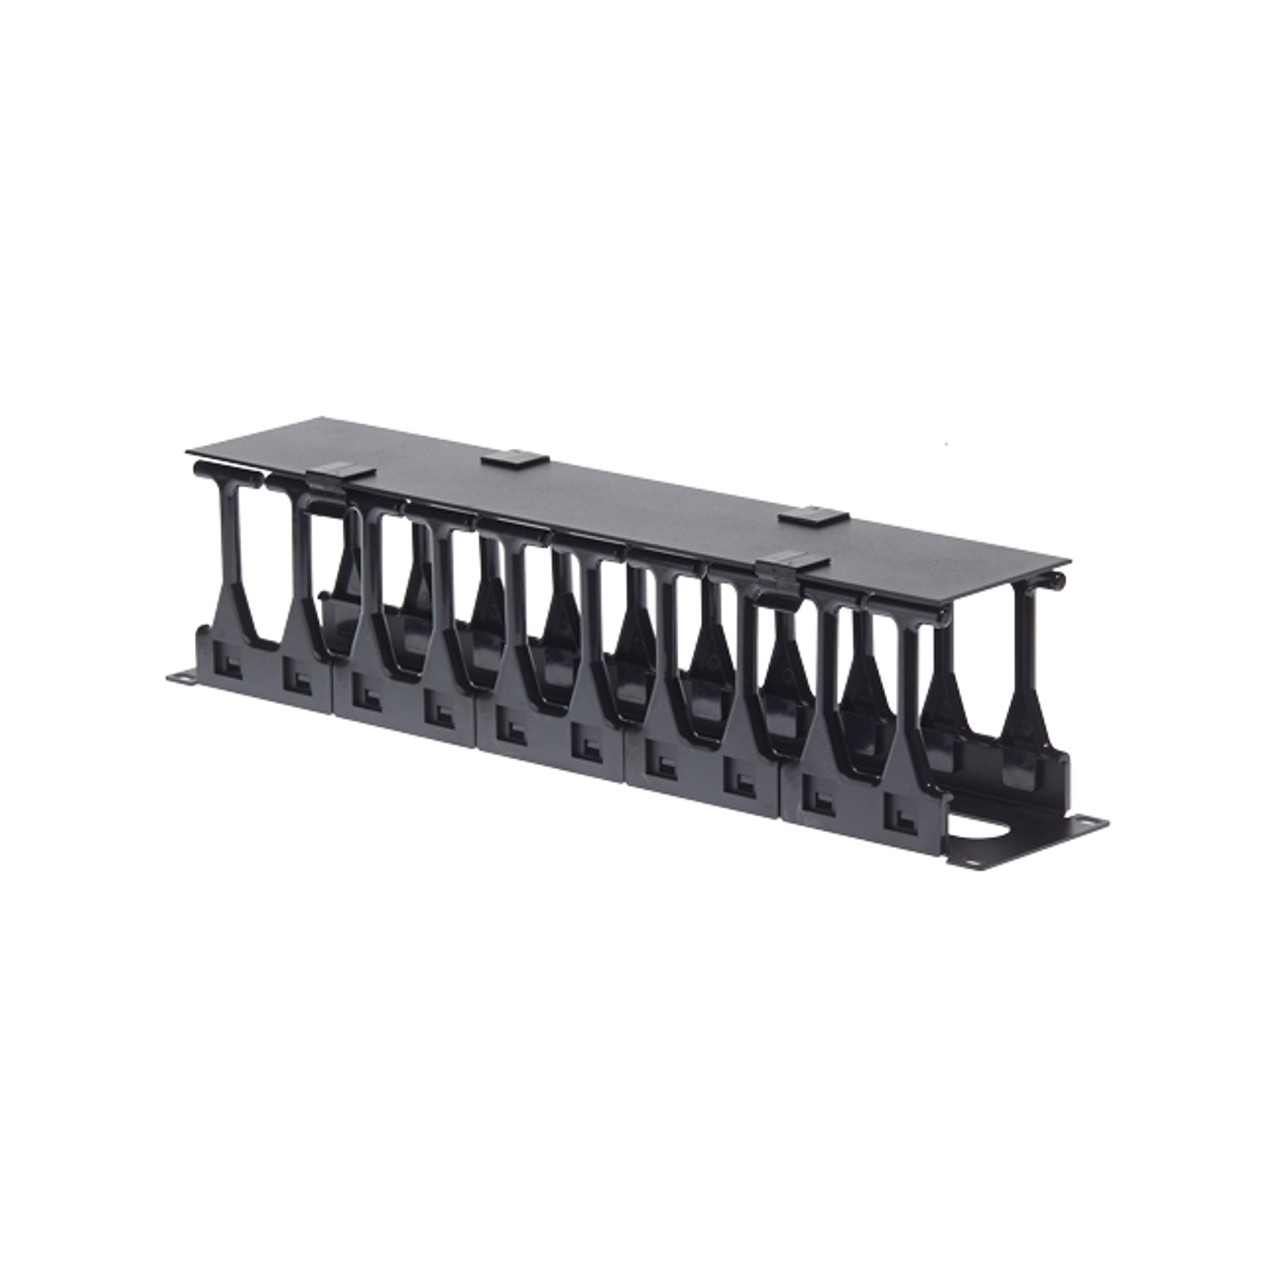 Image for 2RU High Density Cable Management Rail CX Computer Superstore